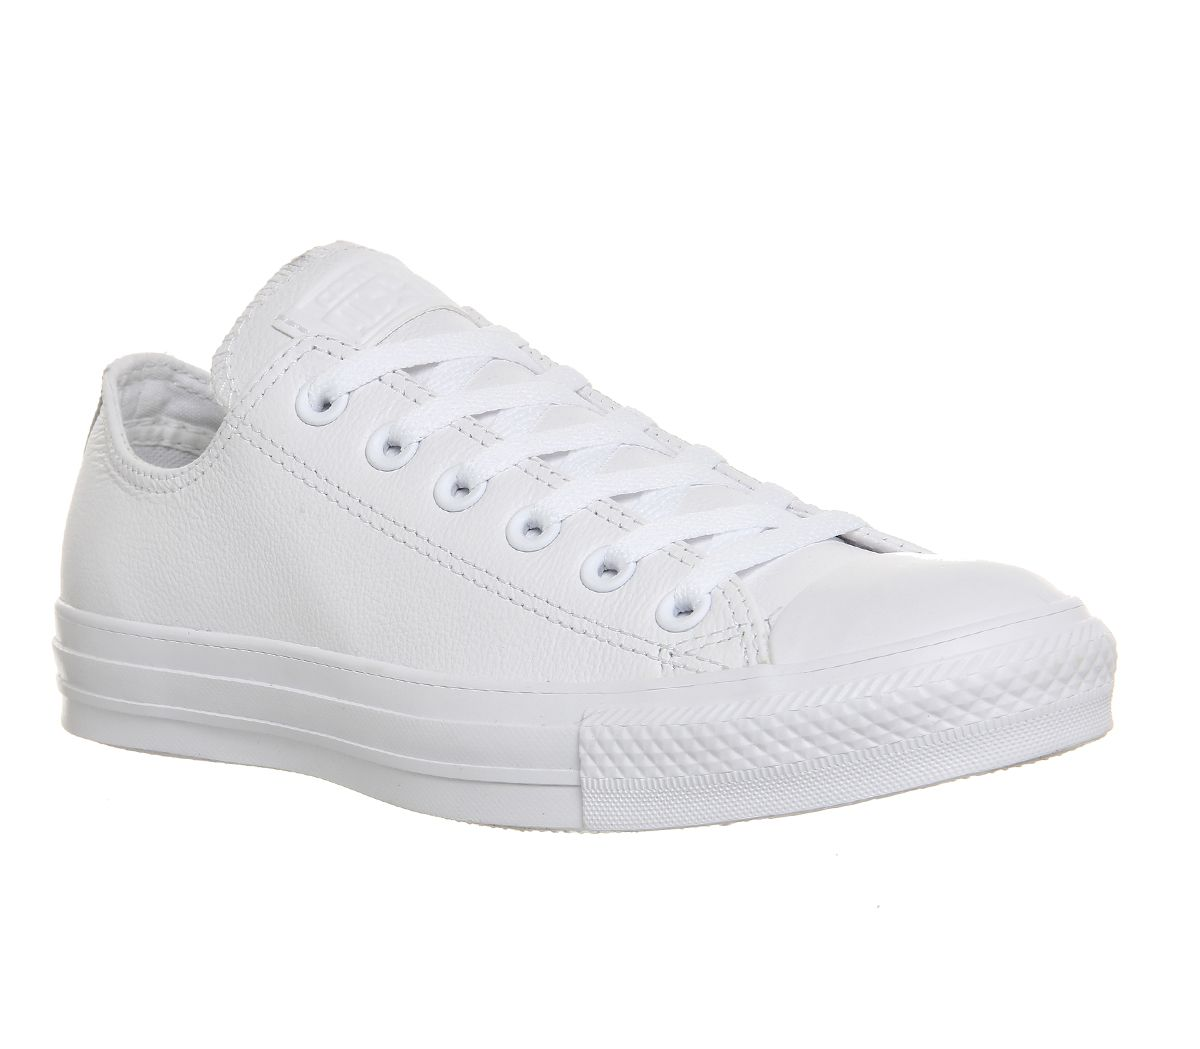 f6c226fd5e57 Converse All Star Low Leather White Mono Leather - Unisex Sports